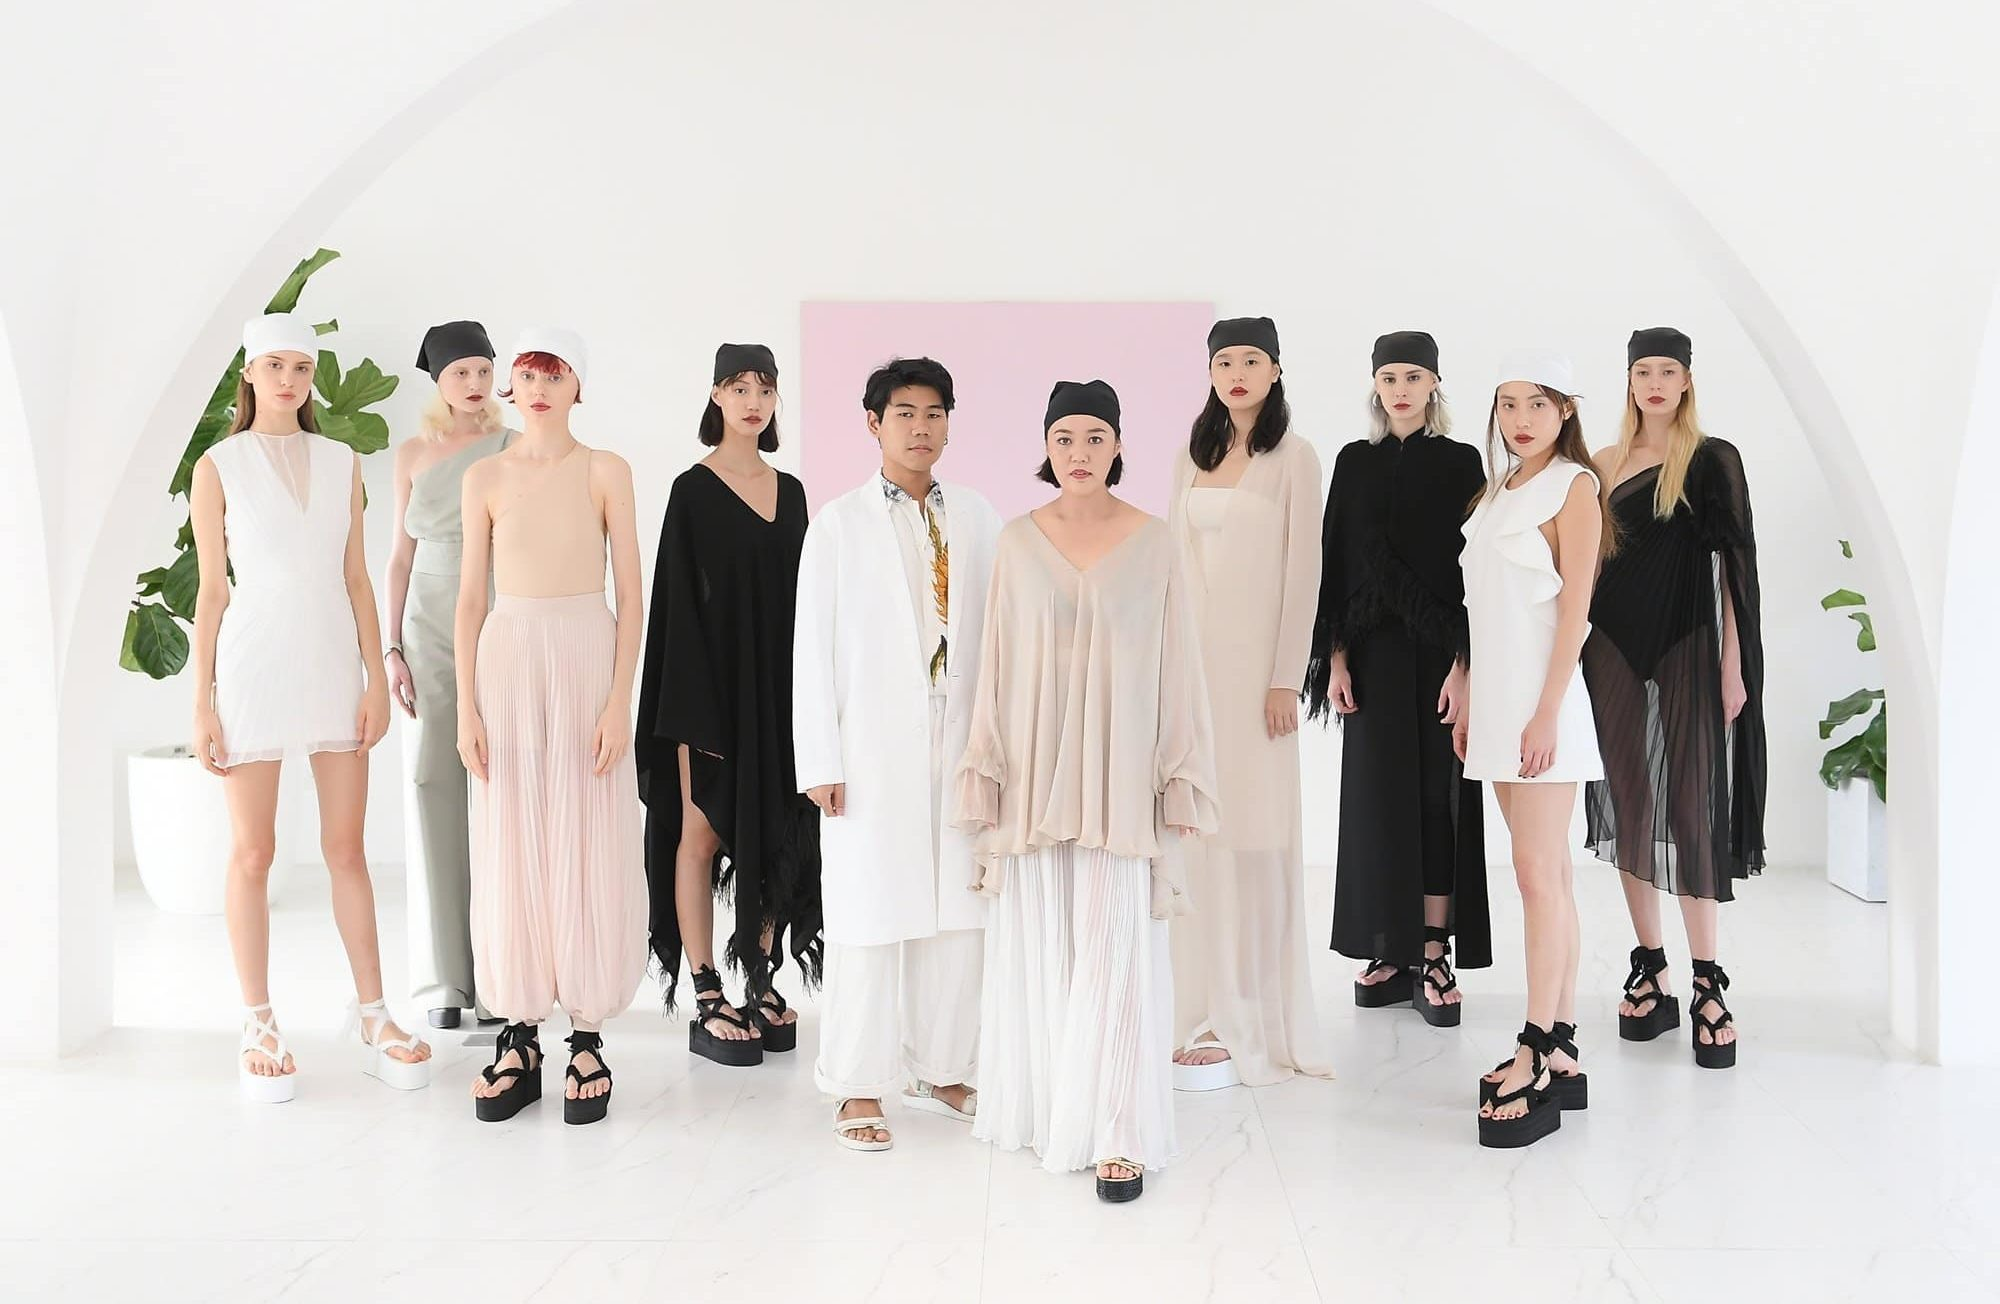 Gallery: Vickteerut's latest cruise 2019 collection is inspired by sculptural arts